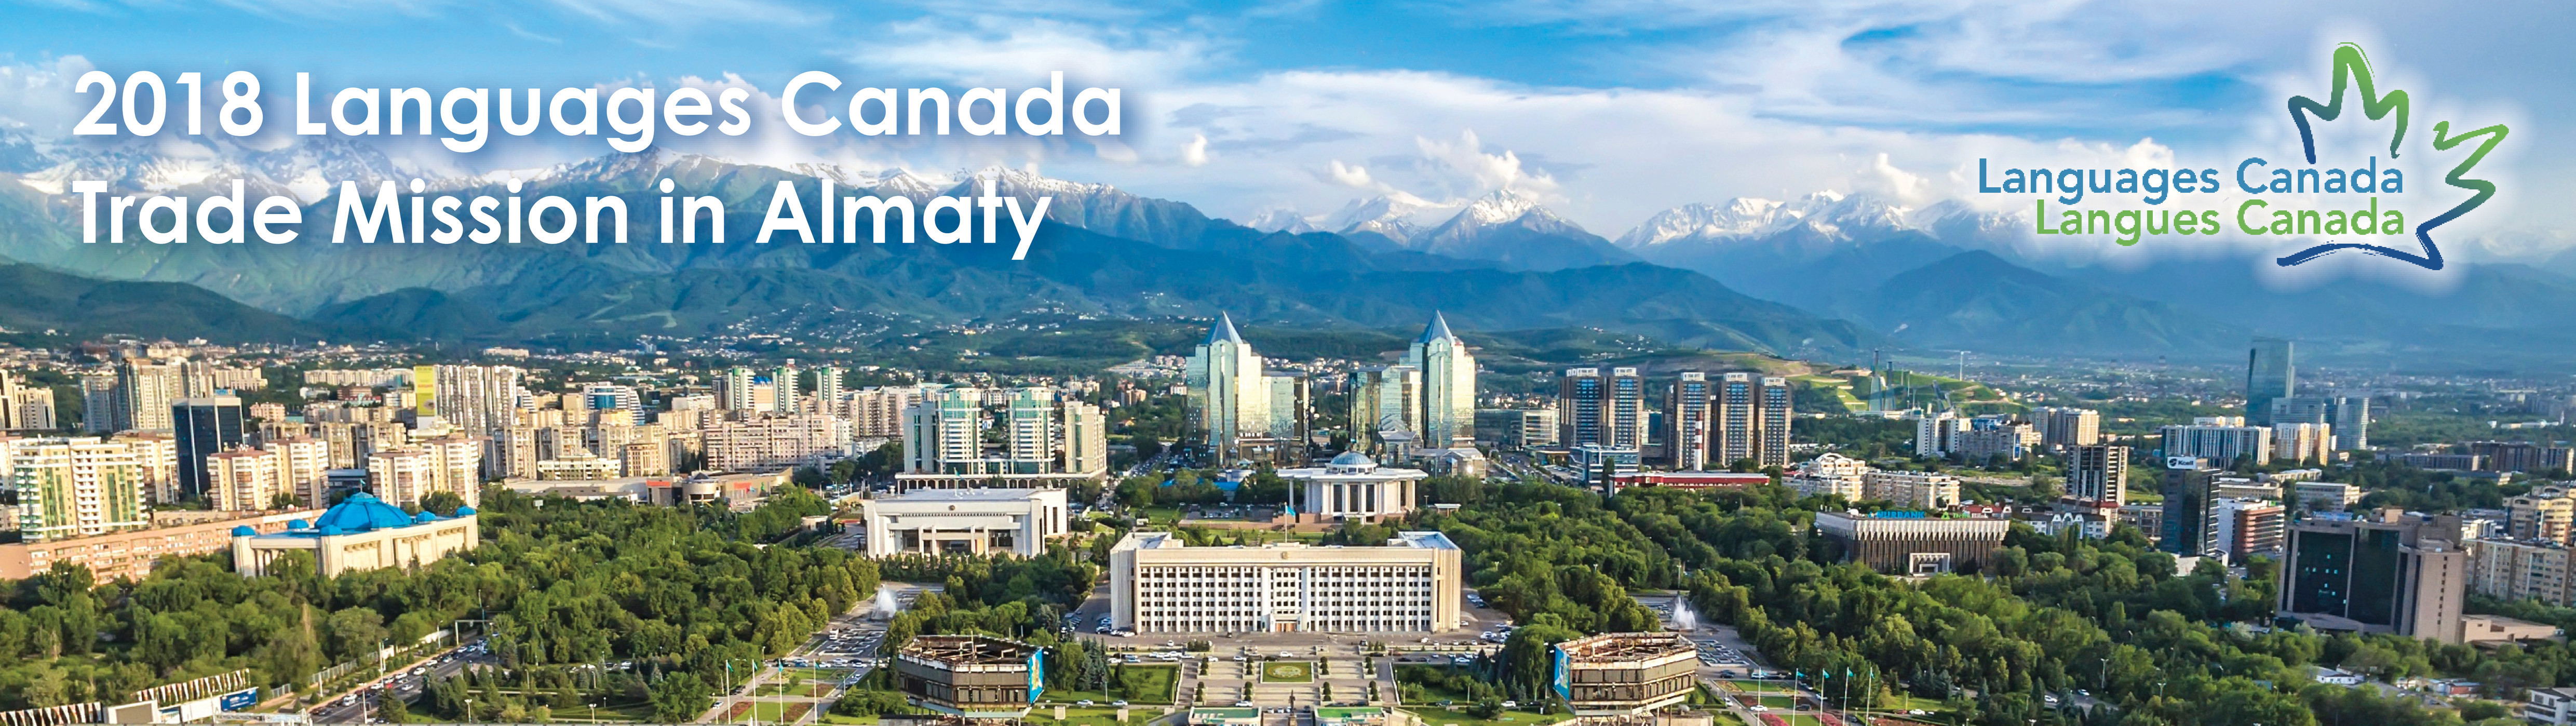 2018 Languages Canada Trade Mission in Almaty